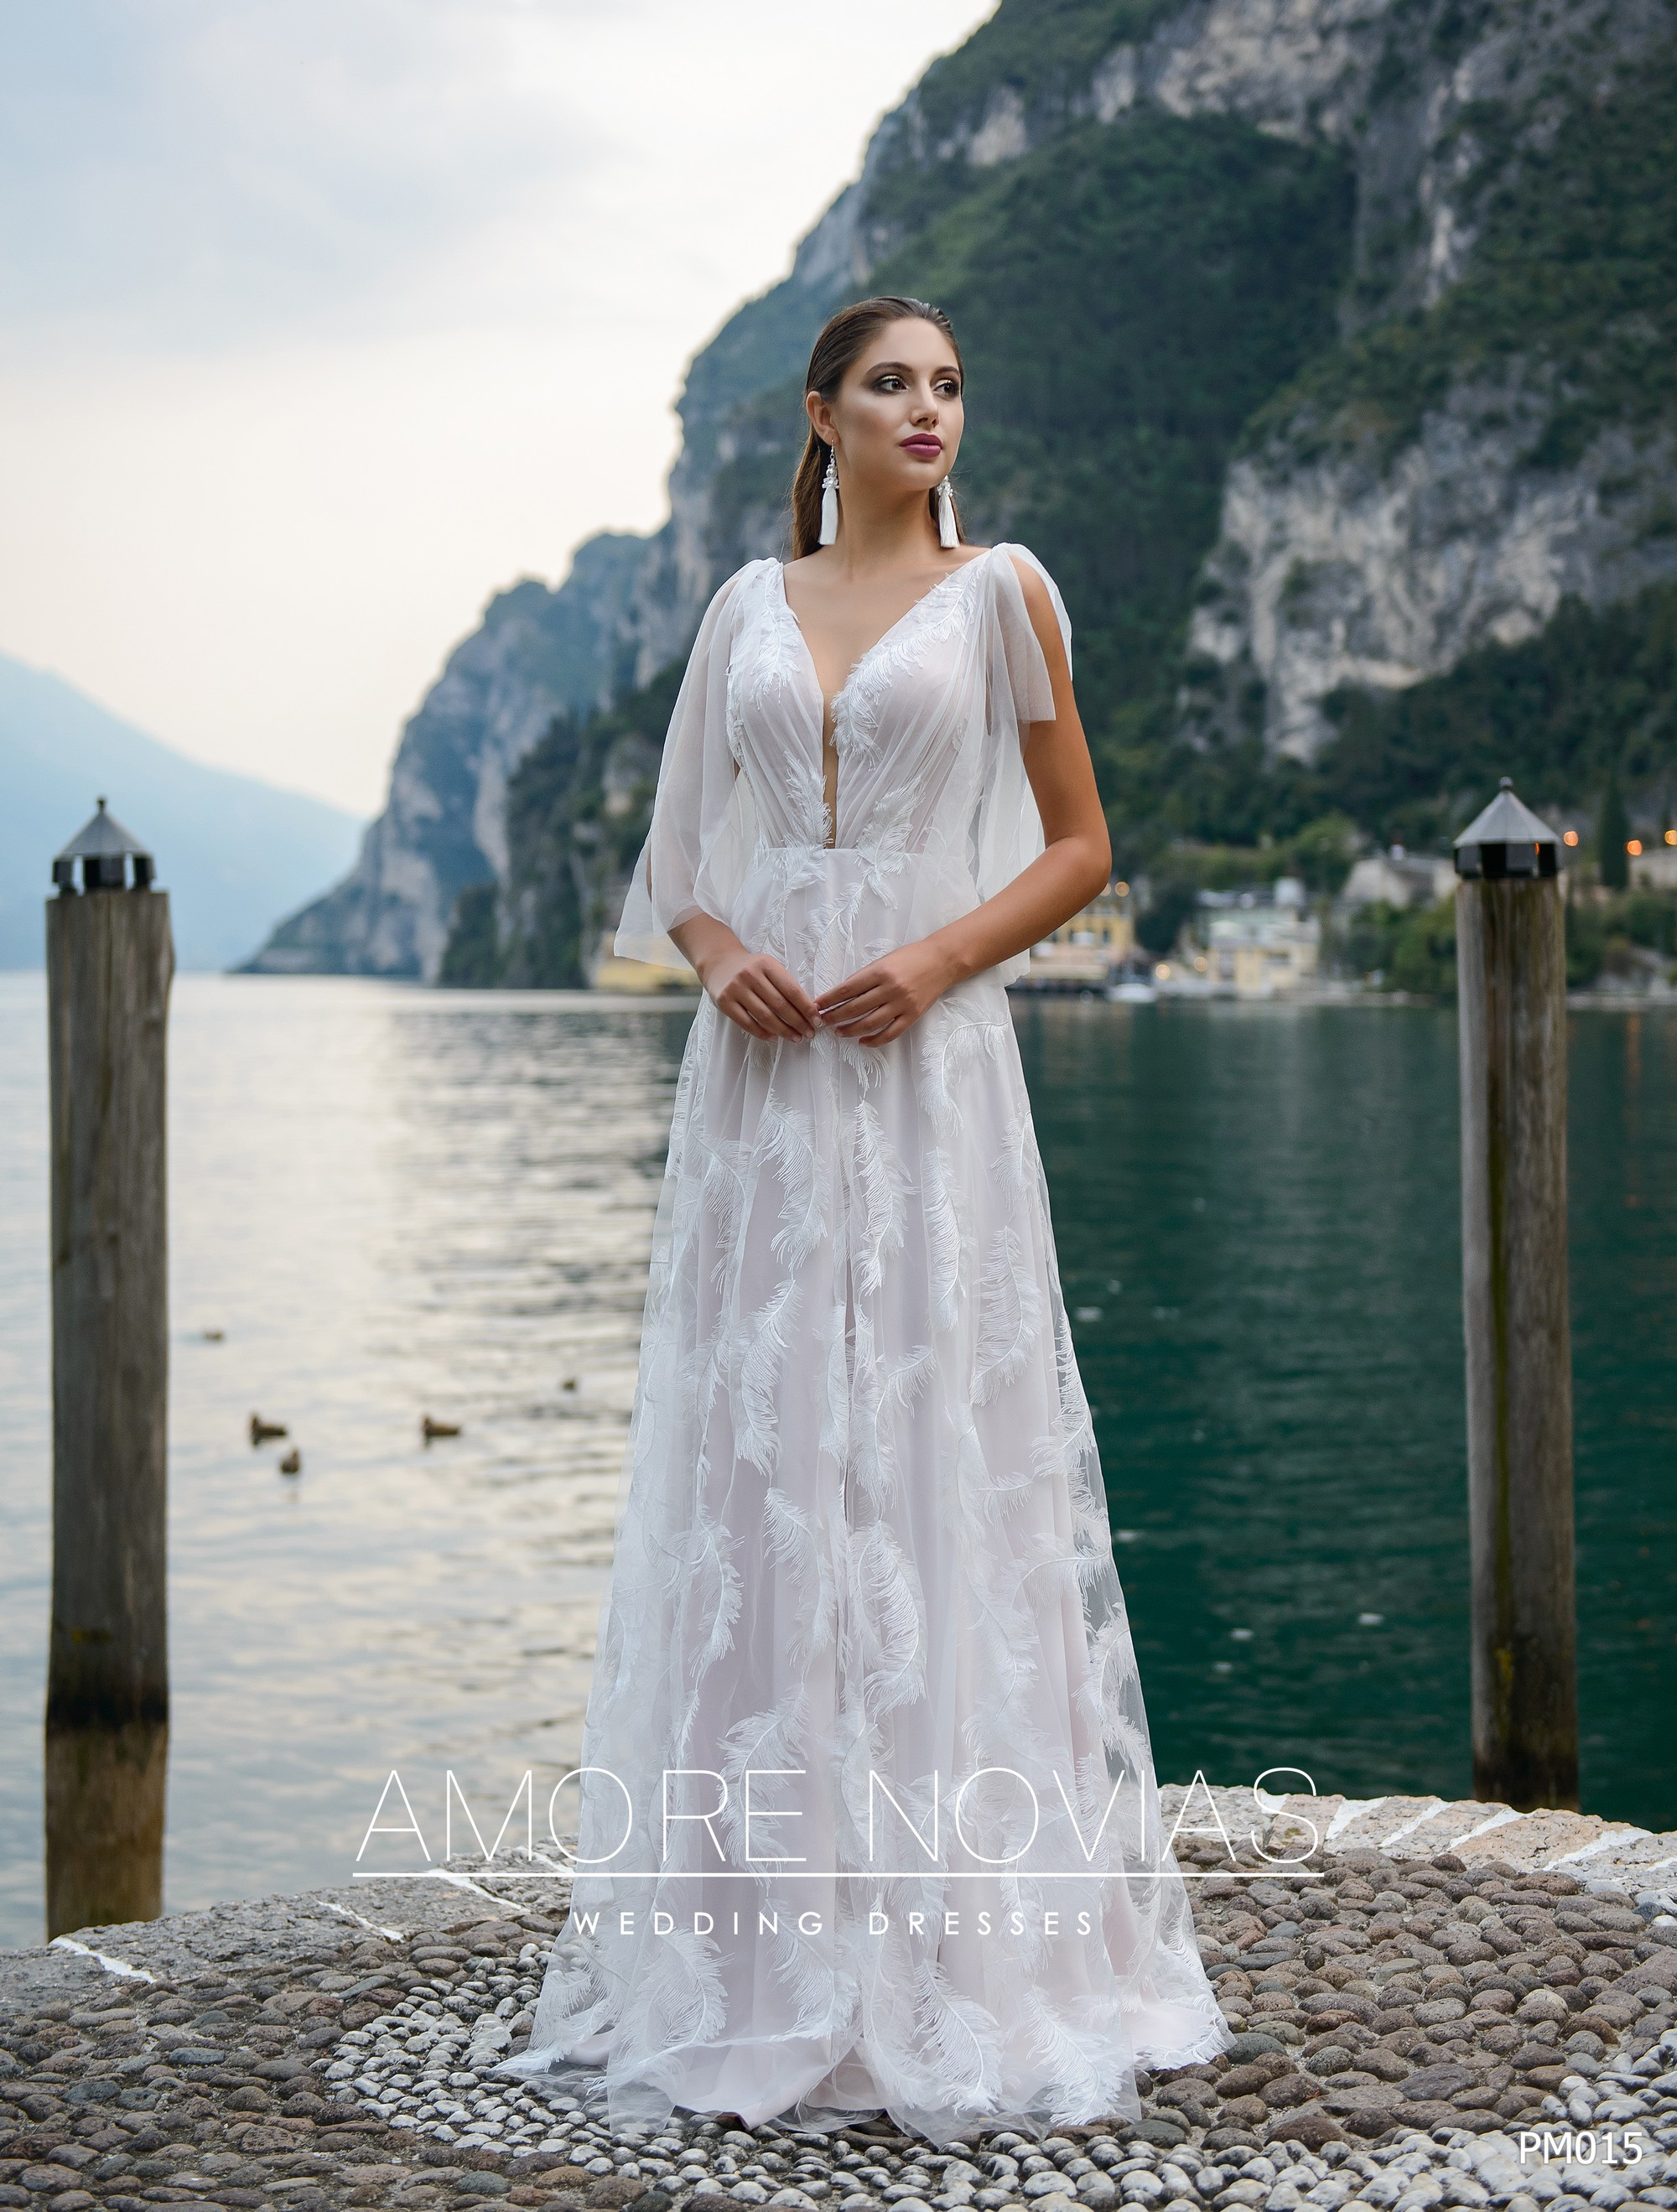 http://amore-novias.com/images/stories/virtuemart/product/pm015-------(1)9.jpg